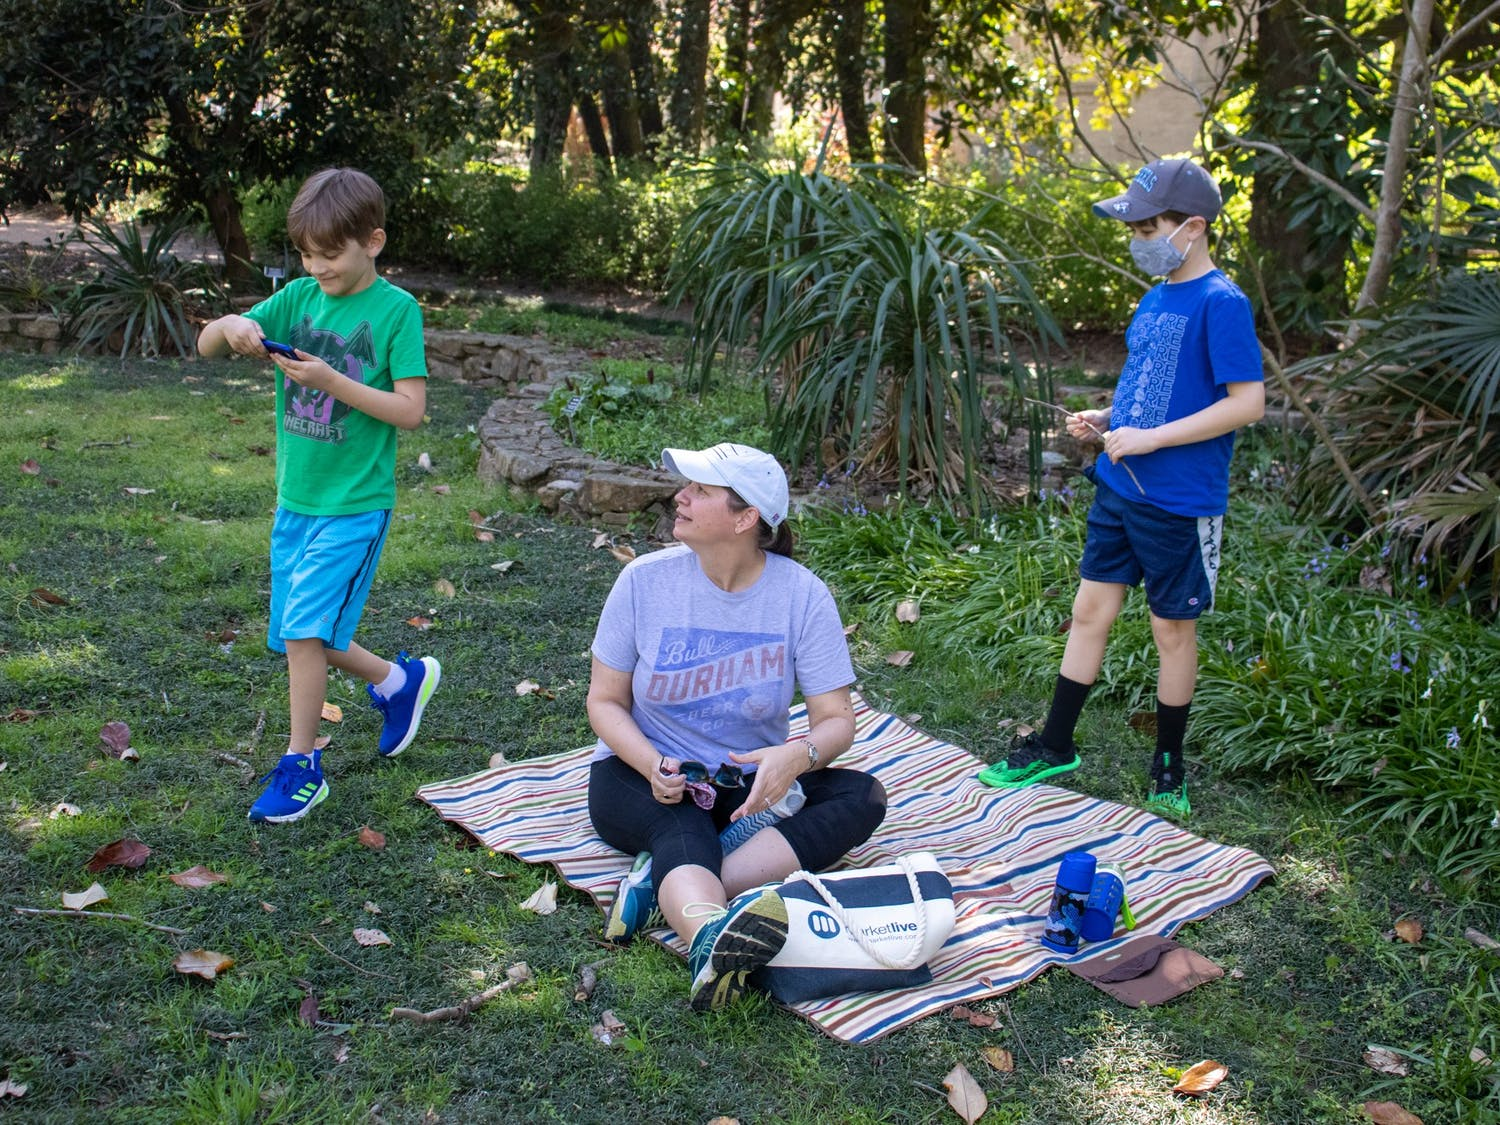 A family plays in Coker Arboretum in Chapel Hill on April 5, 2021.